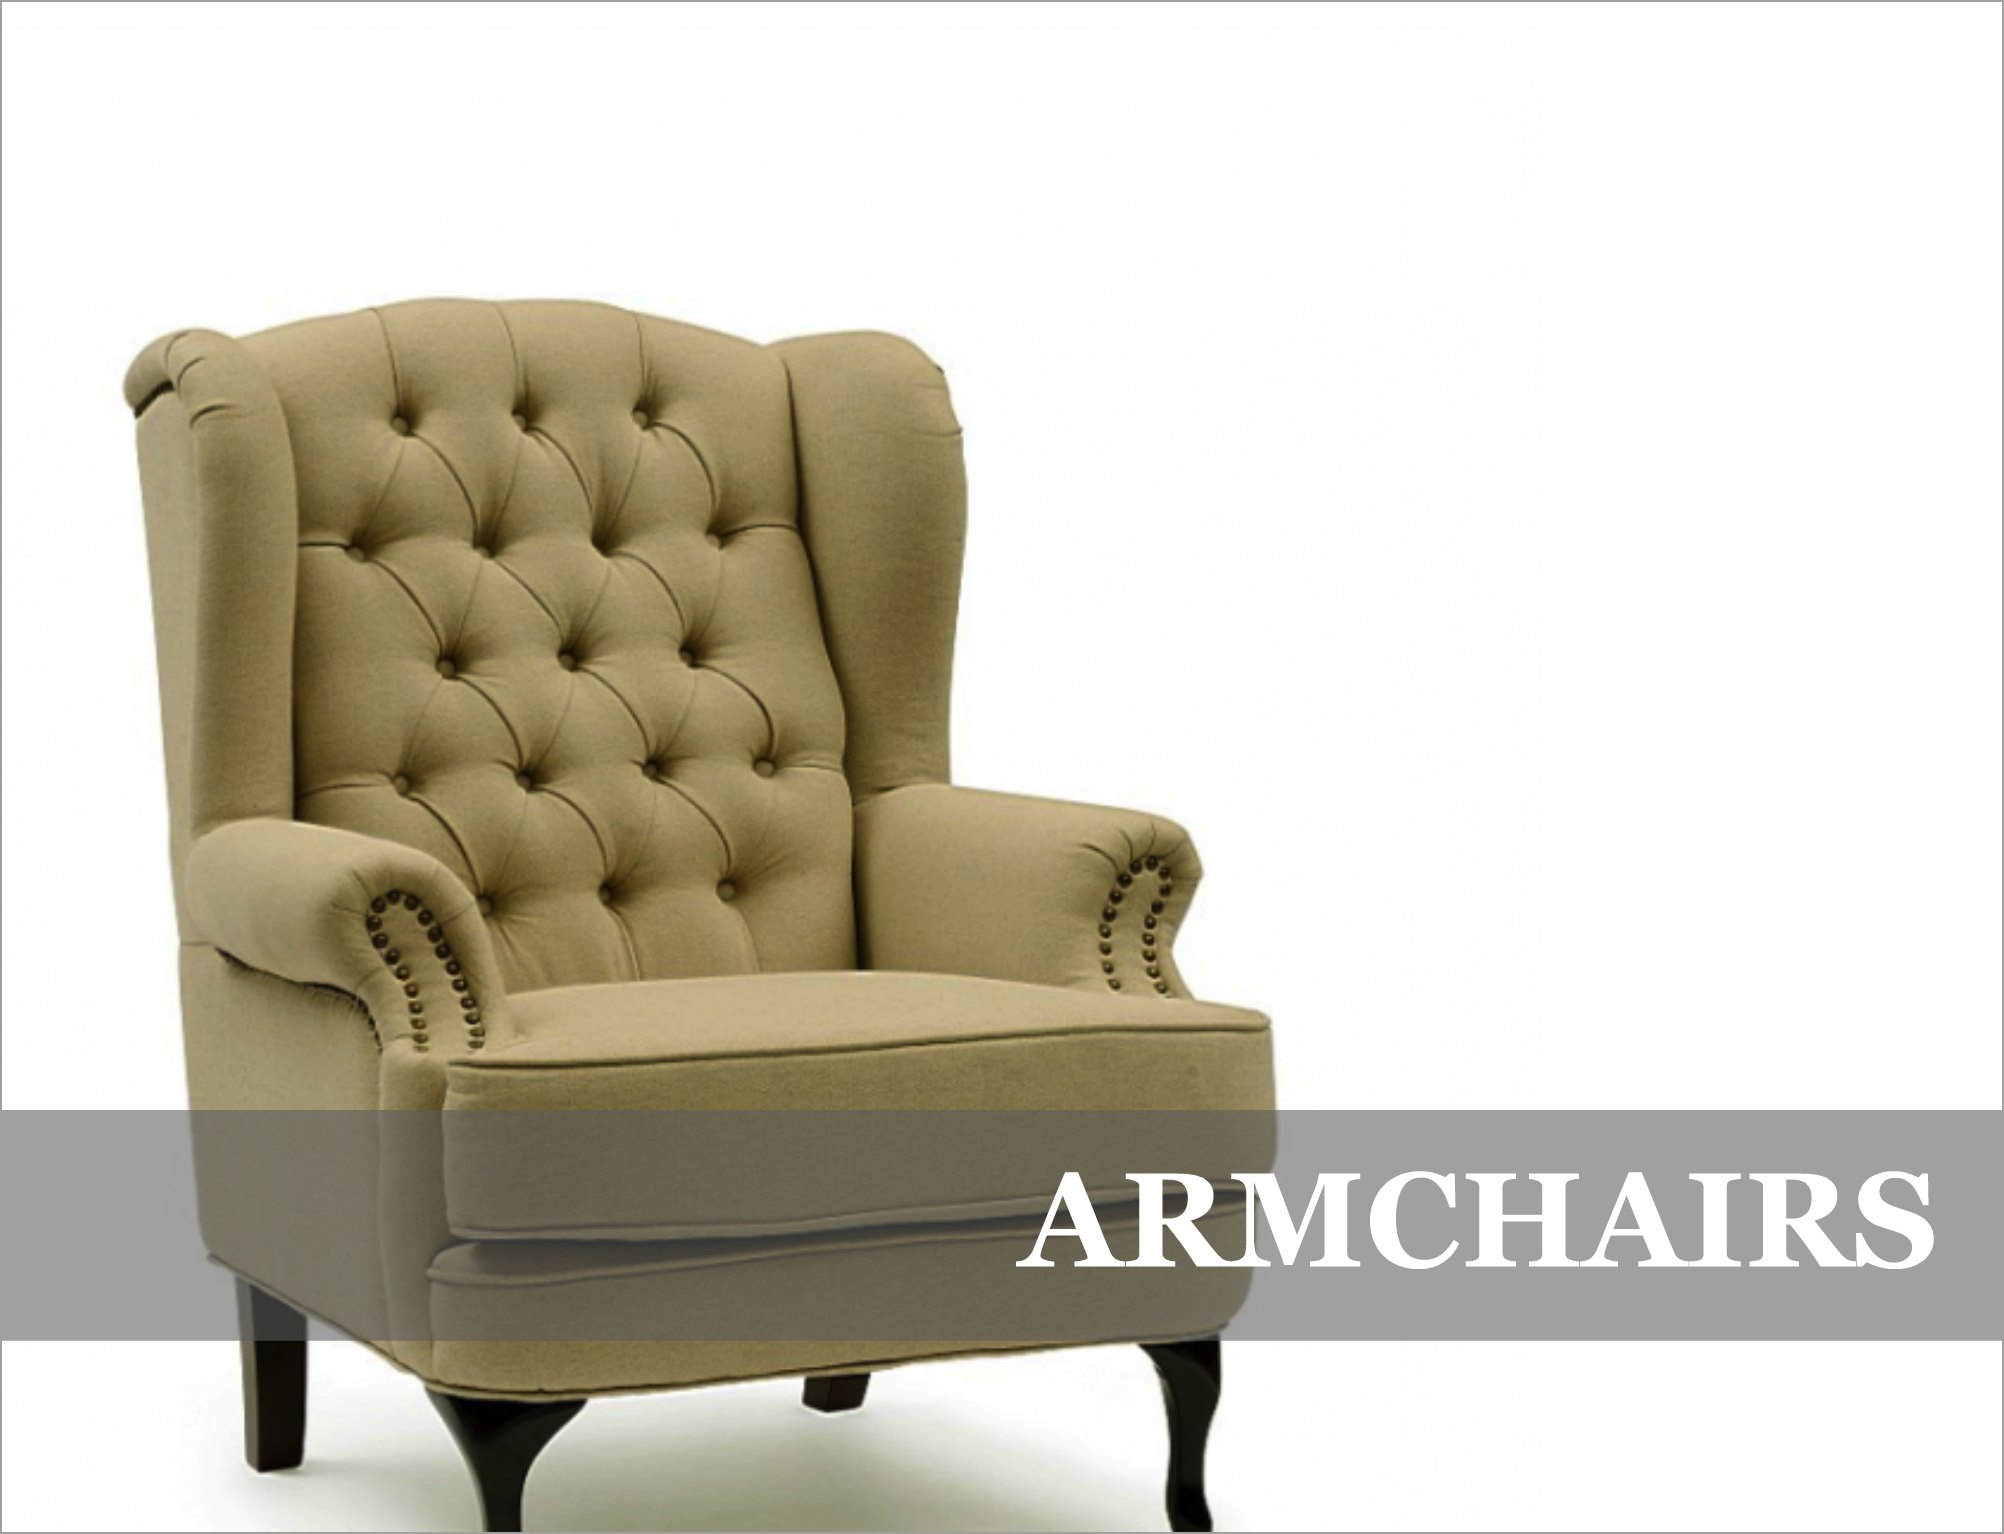 French Provincial English Upholstered Arm Chairs